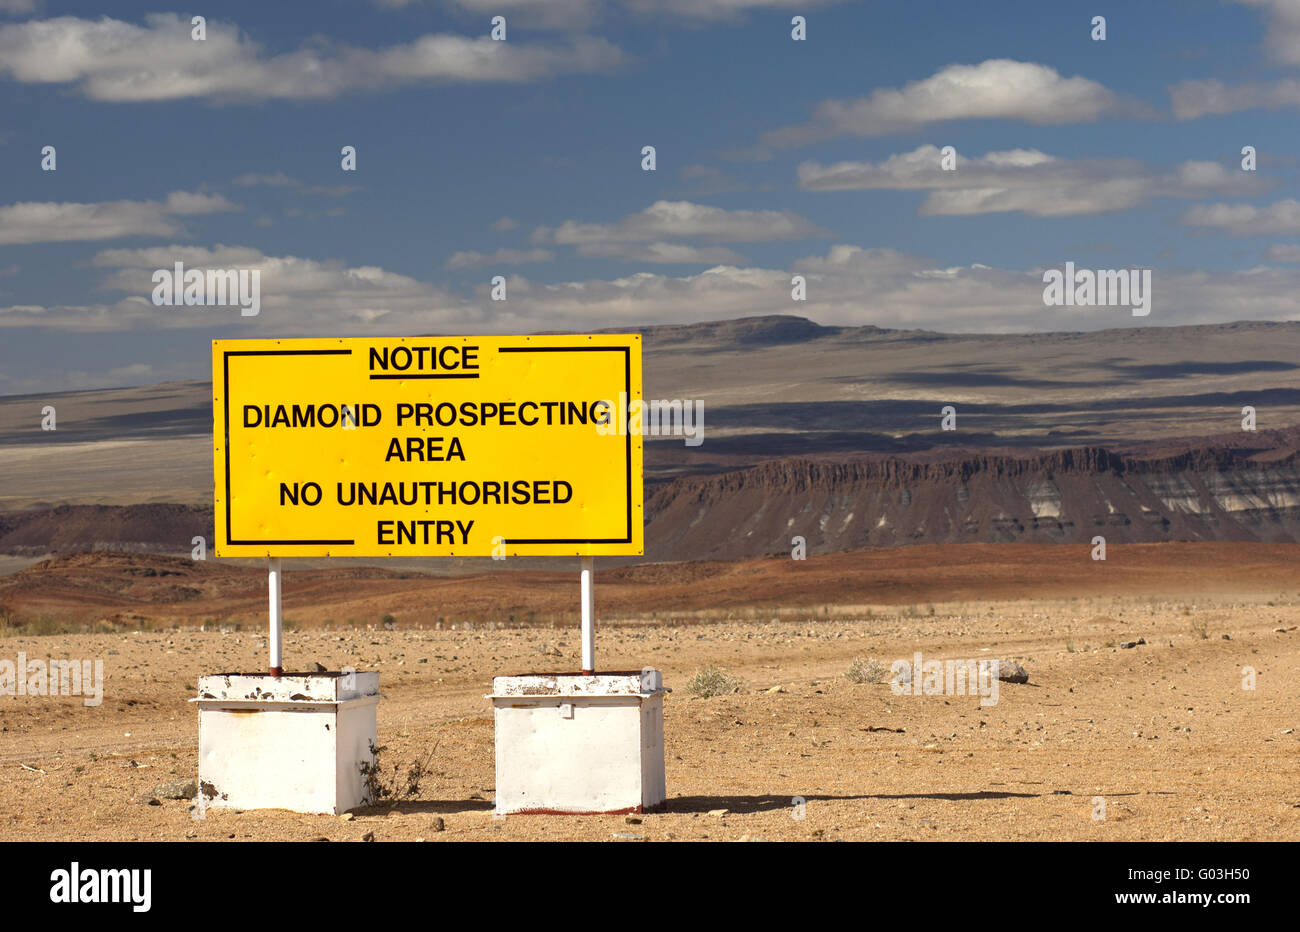 Prohibition sign at a diamond prospecting area - Stock Image